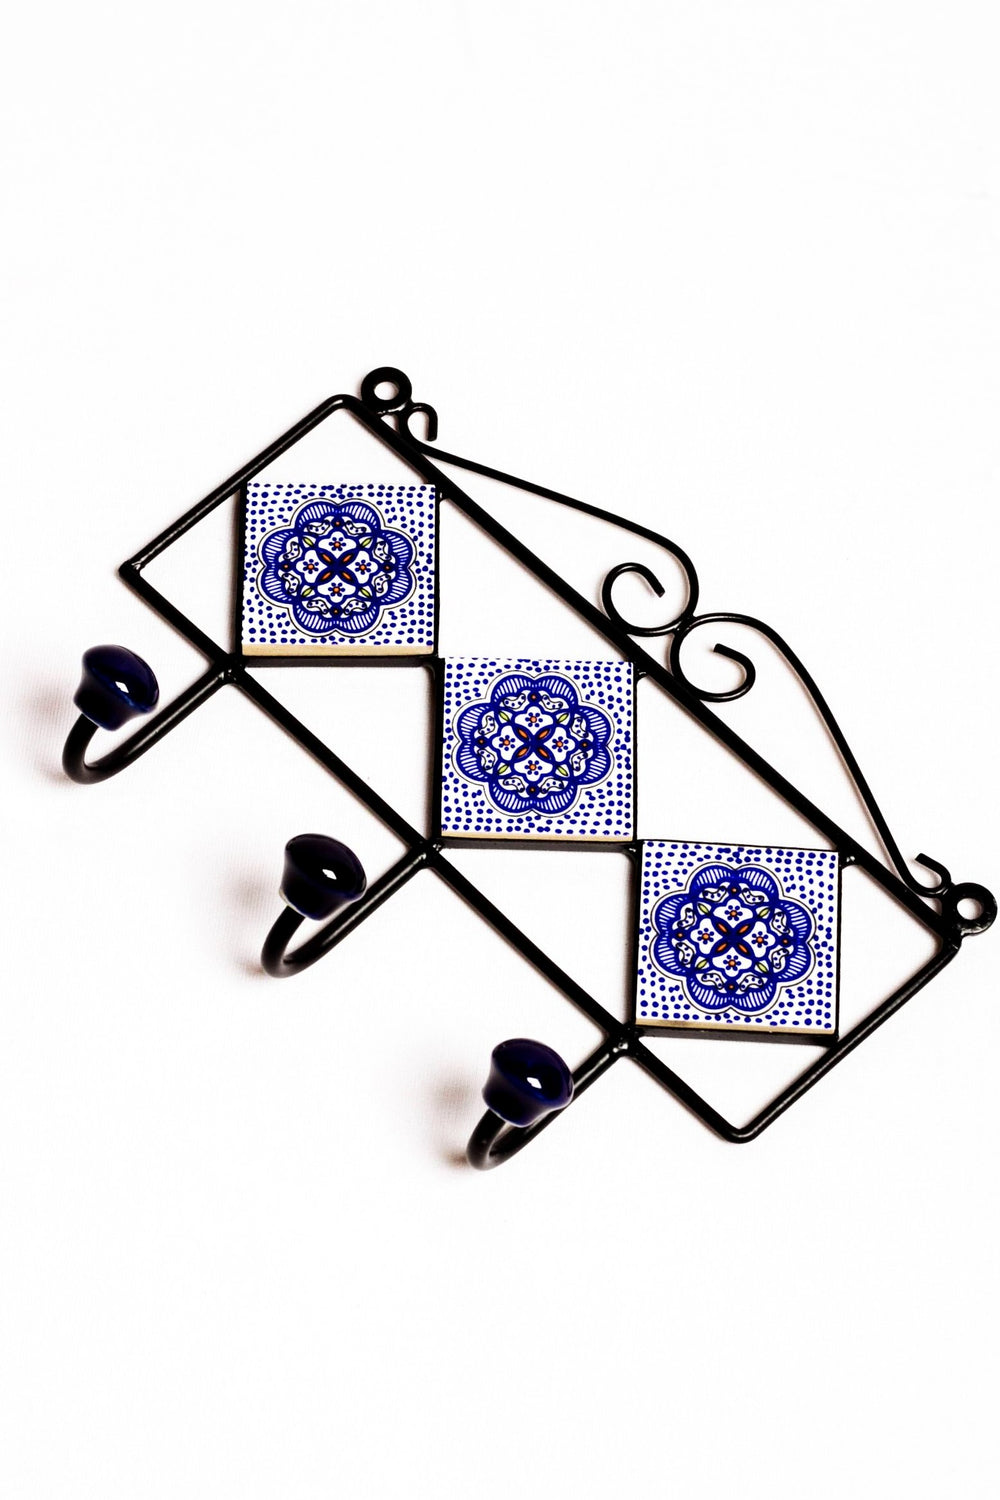 Metal and ceramic 3 tile 3 hook frame in white with red and blue floral motif